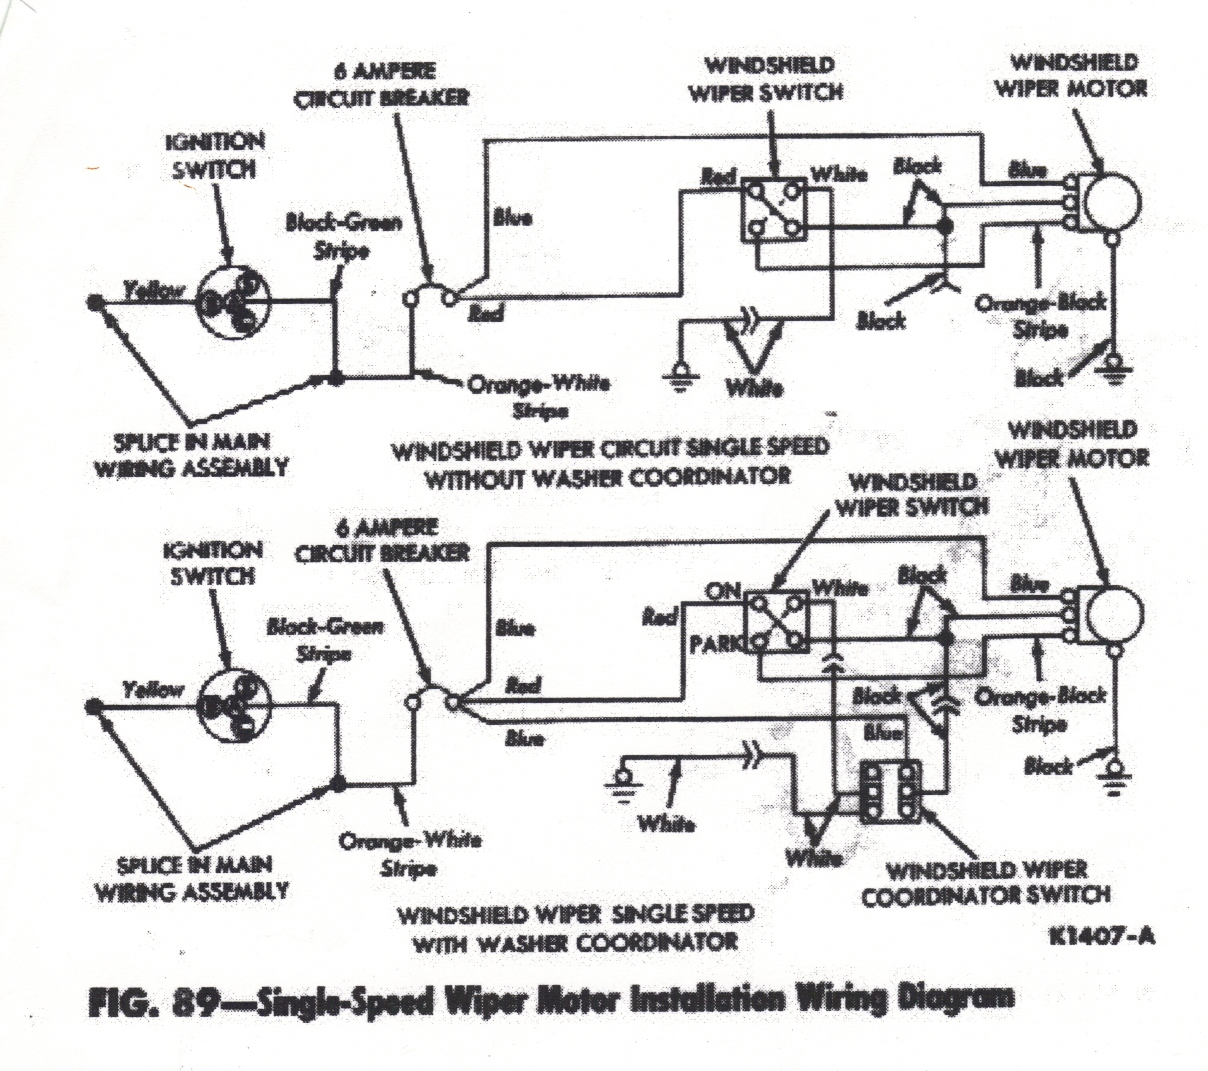 Falcon Diagrams Waywiringquestions29480d12969334493wayswitchwiring Here You Will Find Wiring Related To The Ford